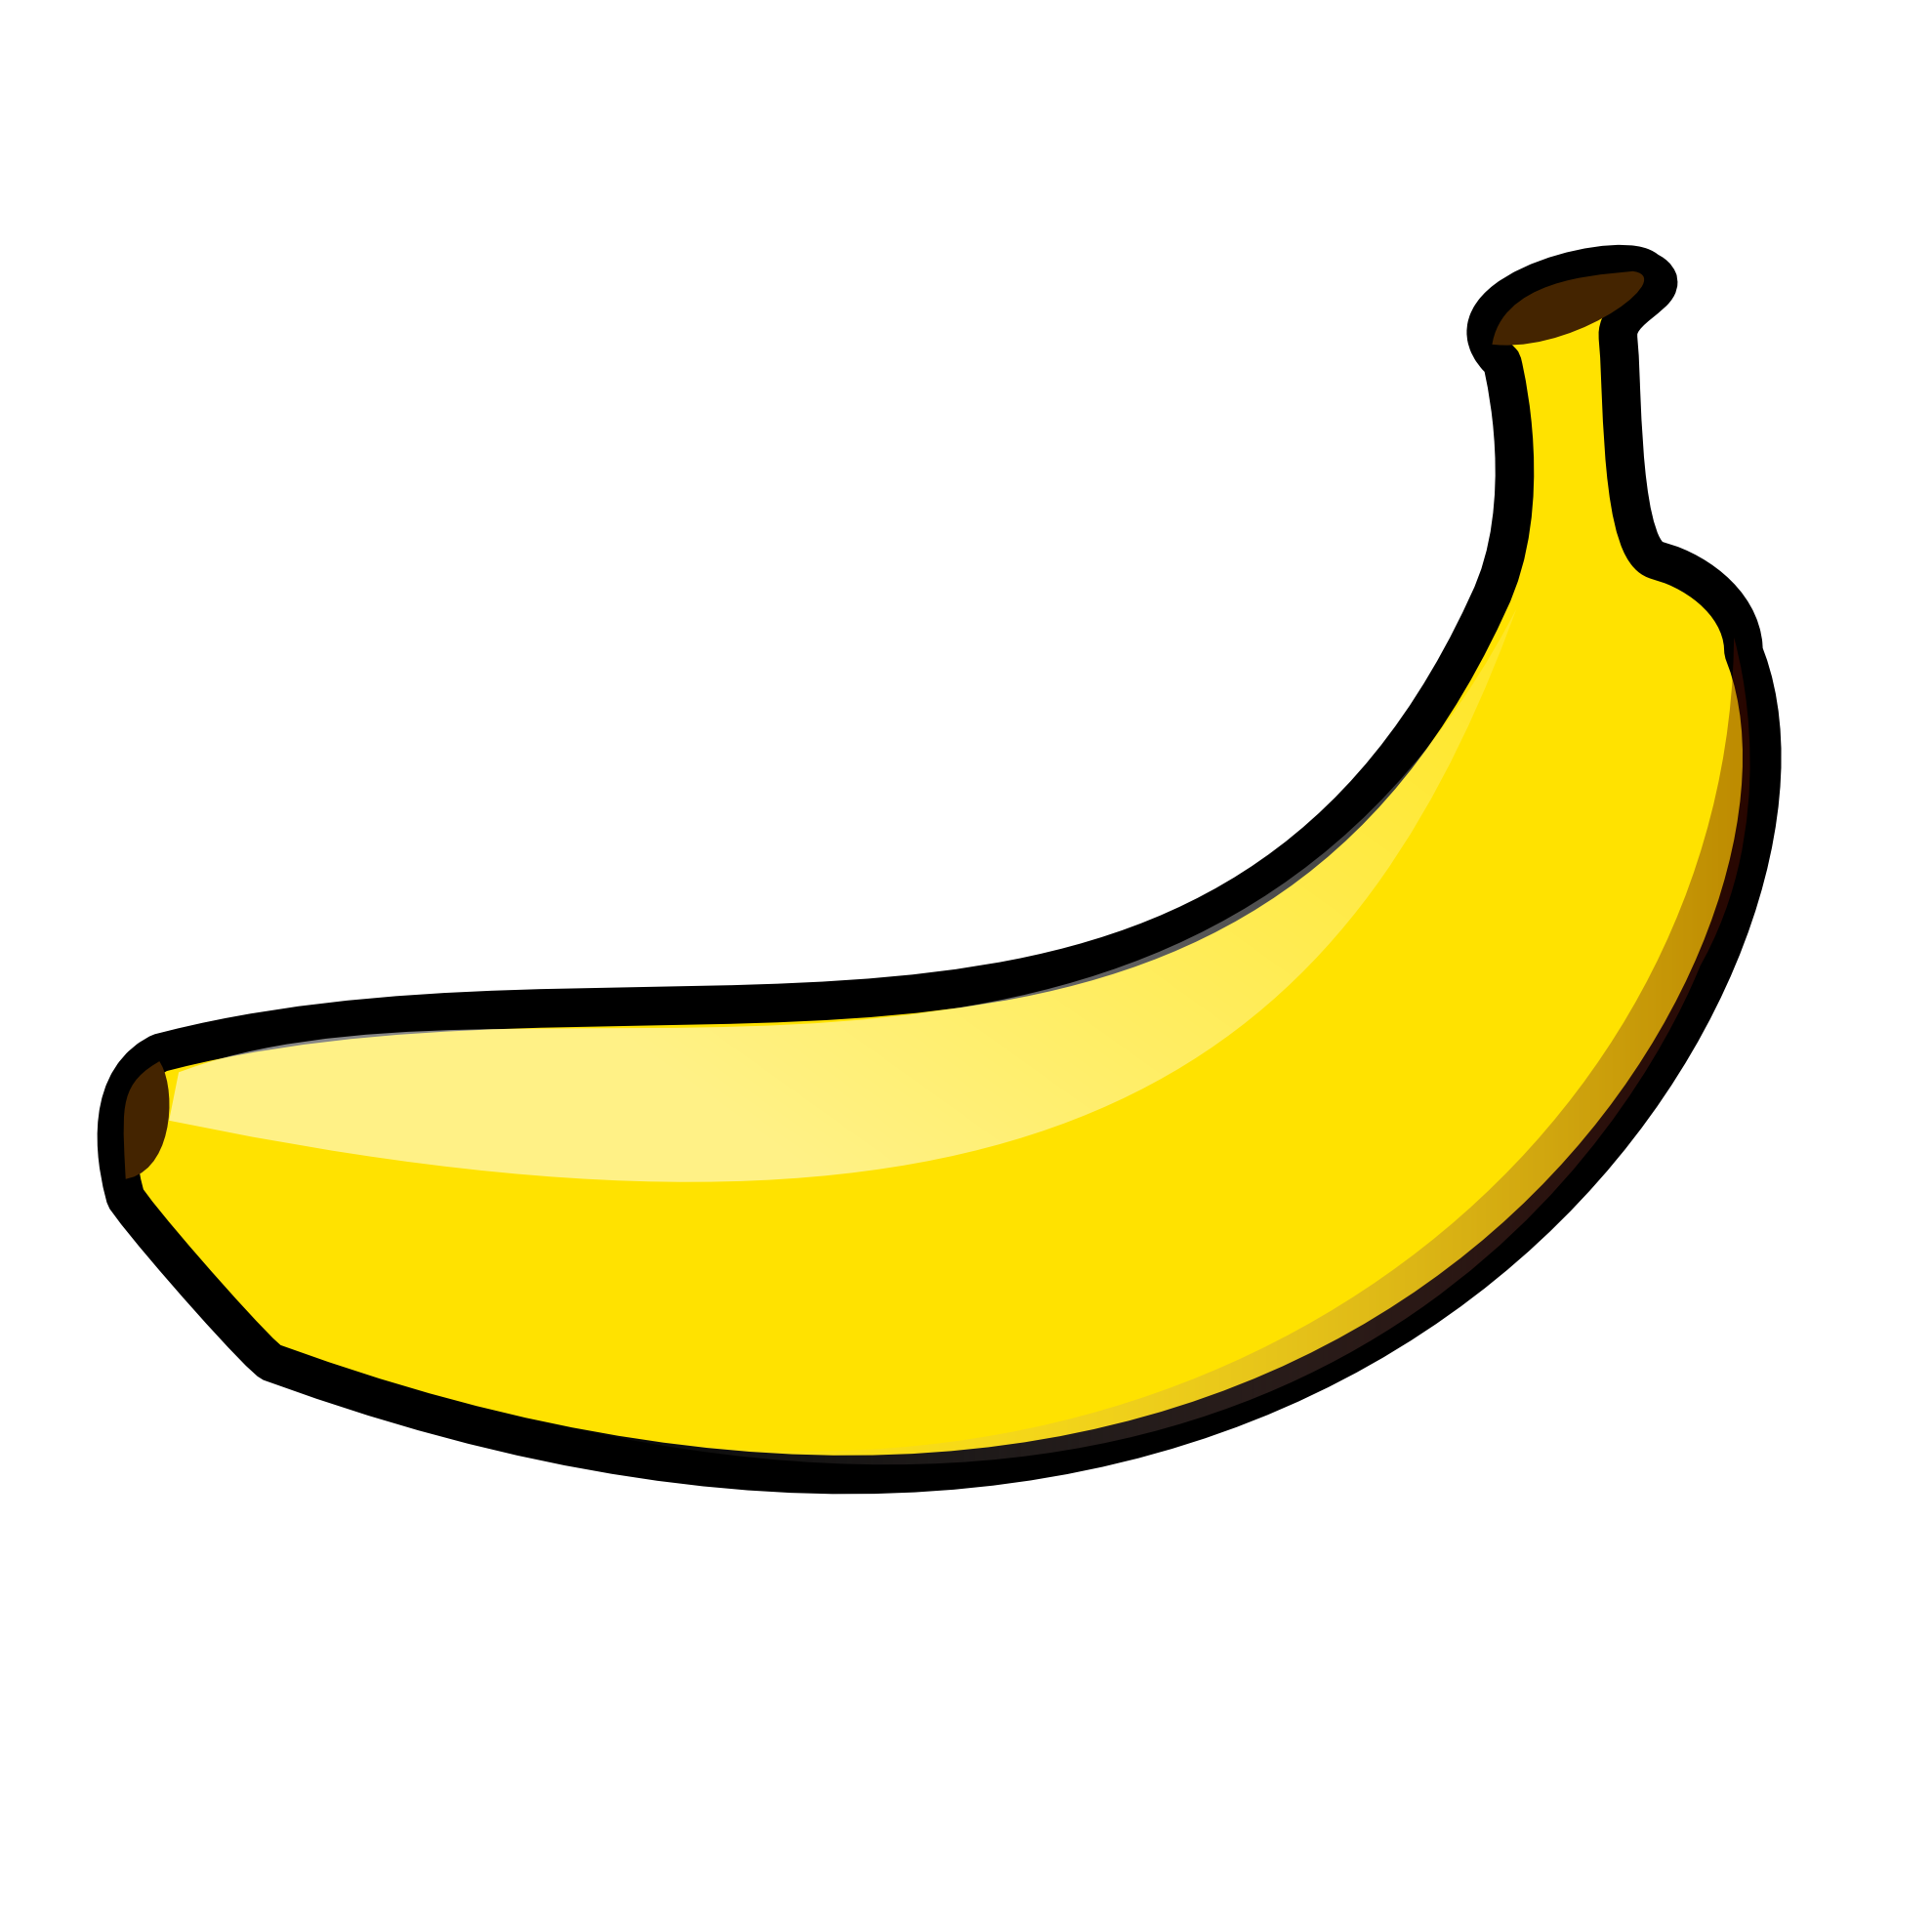 clipart royalty free library Banana clipart black and. Bananas vector flat design